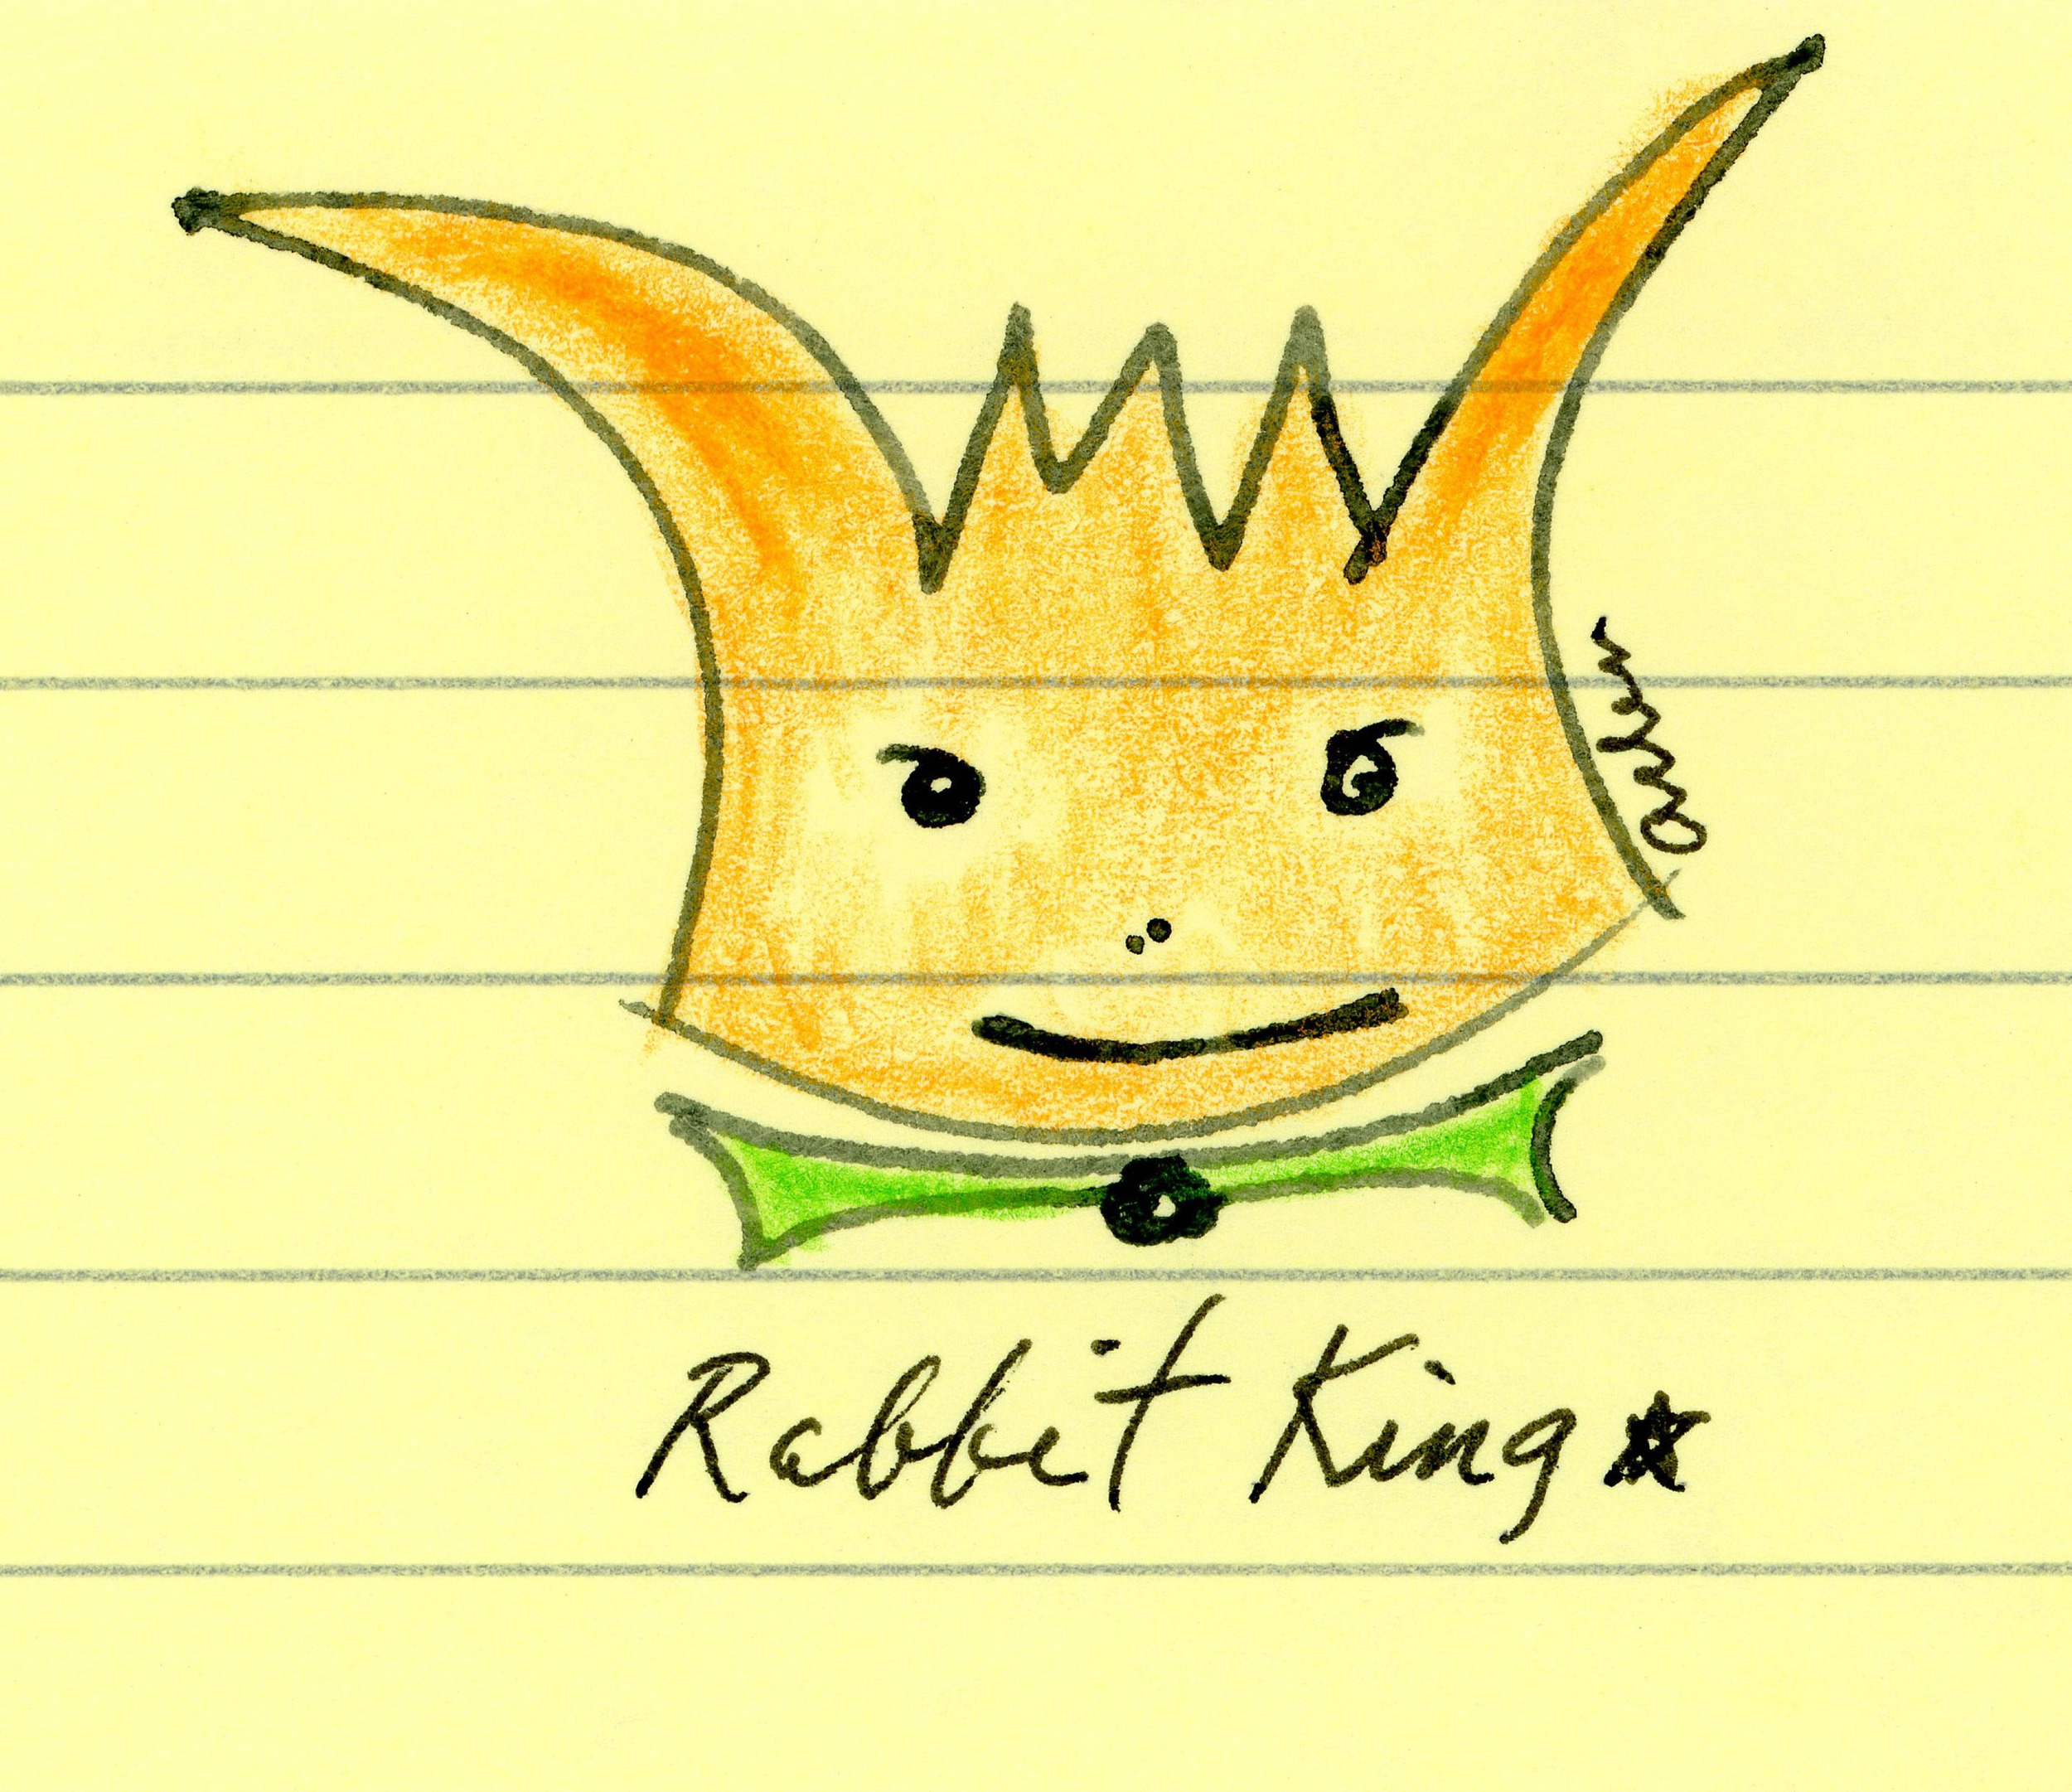 Yes, I am the Rabbit King.